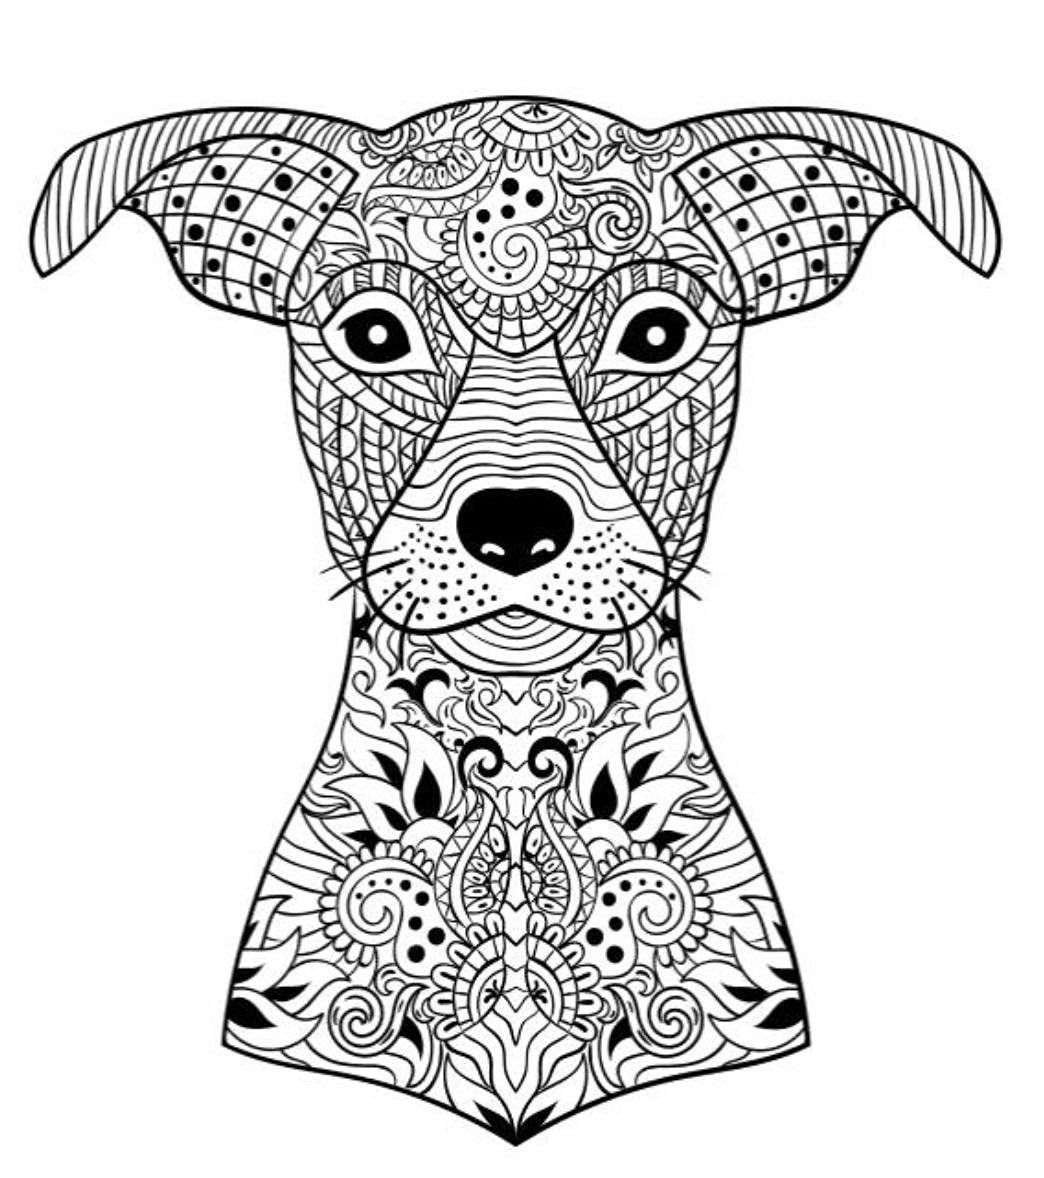 Dog Coloring Book | AdultcoloringbookZ